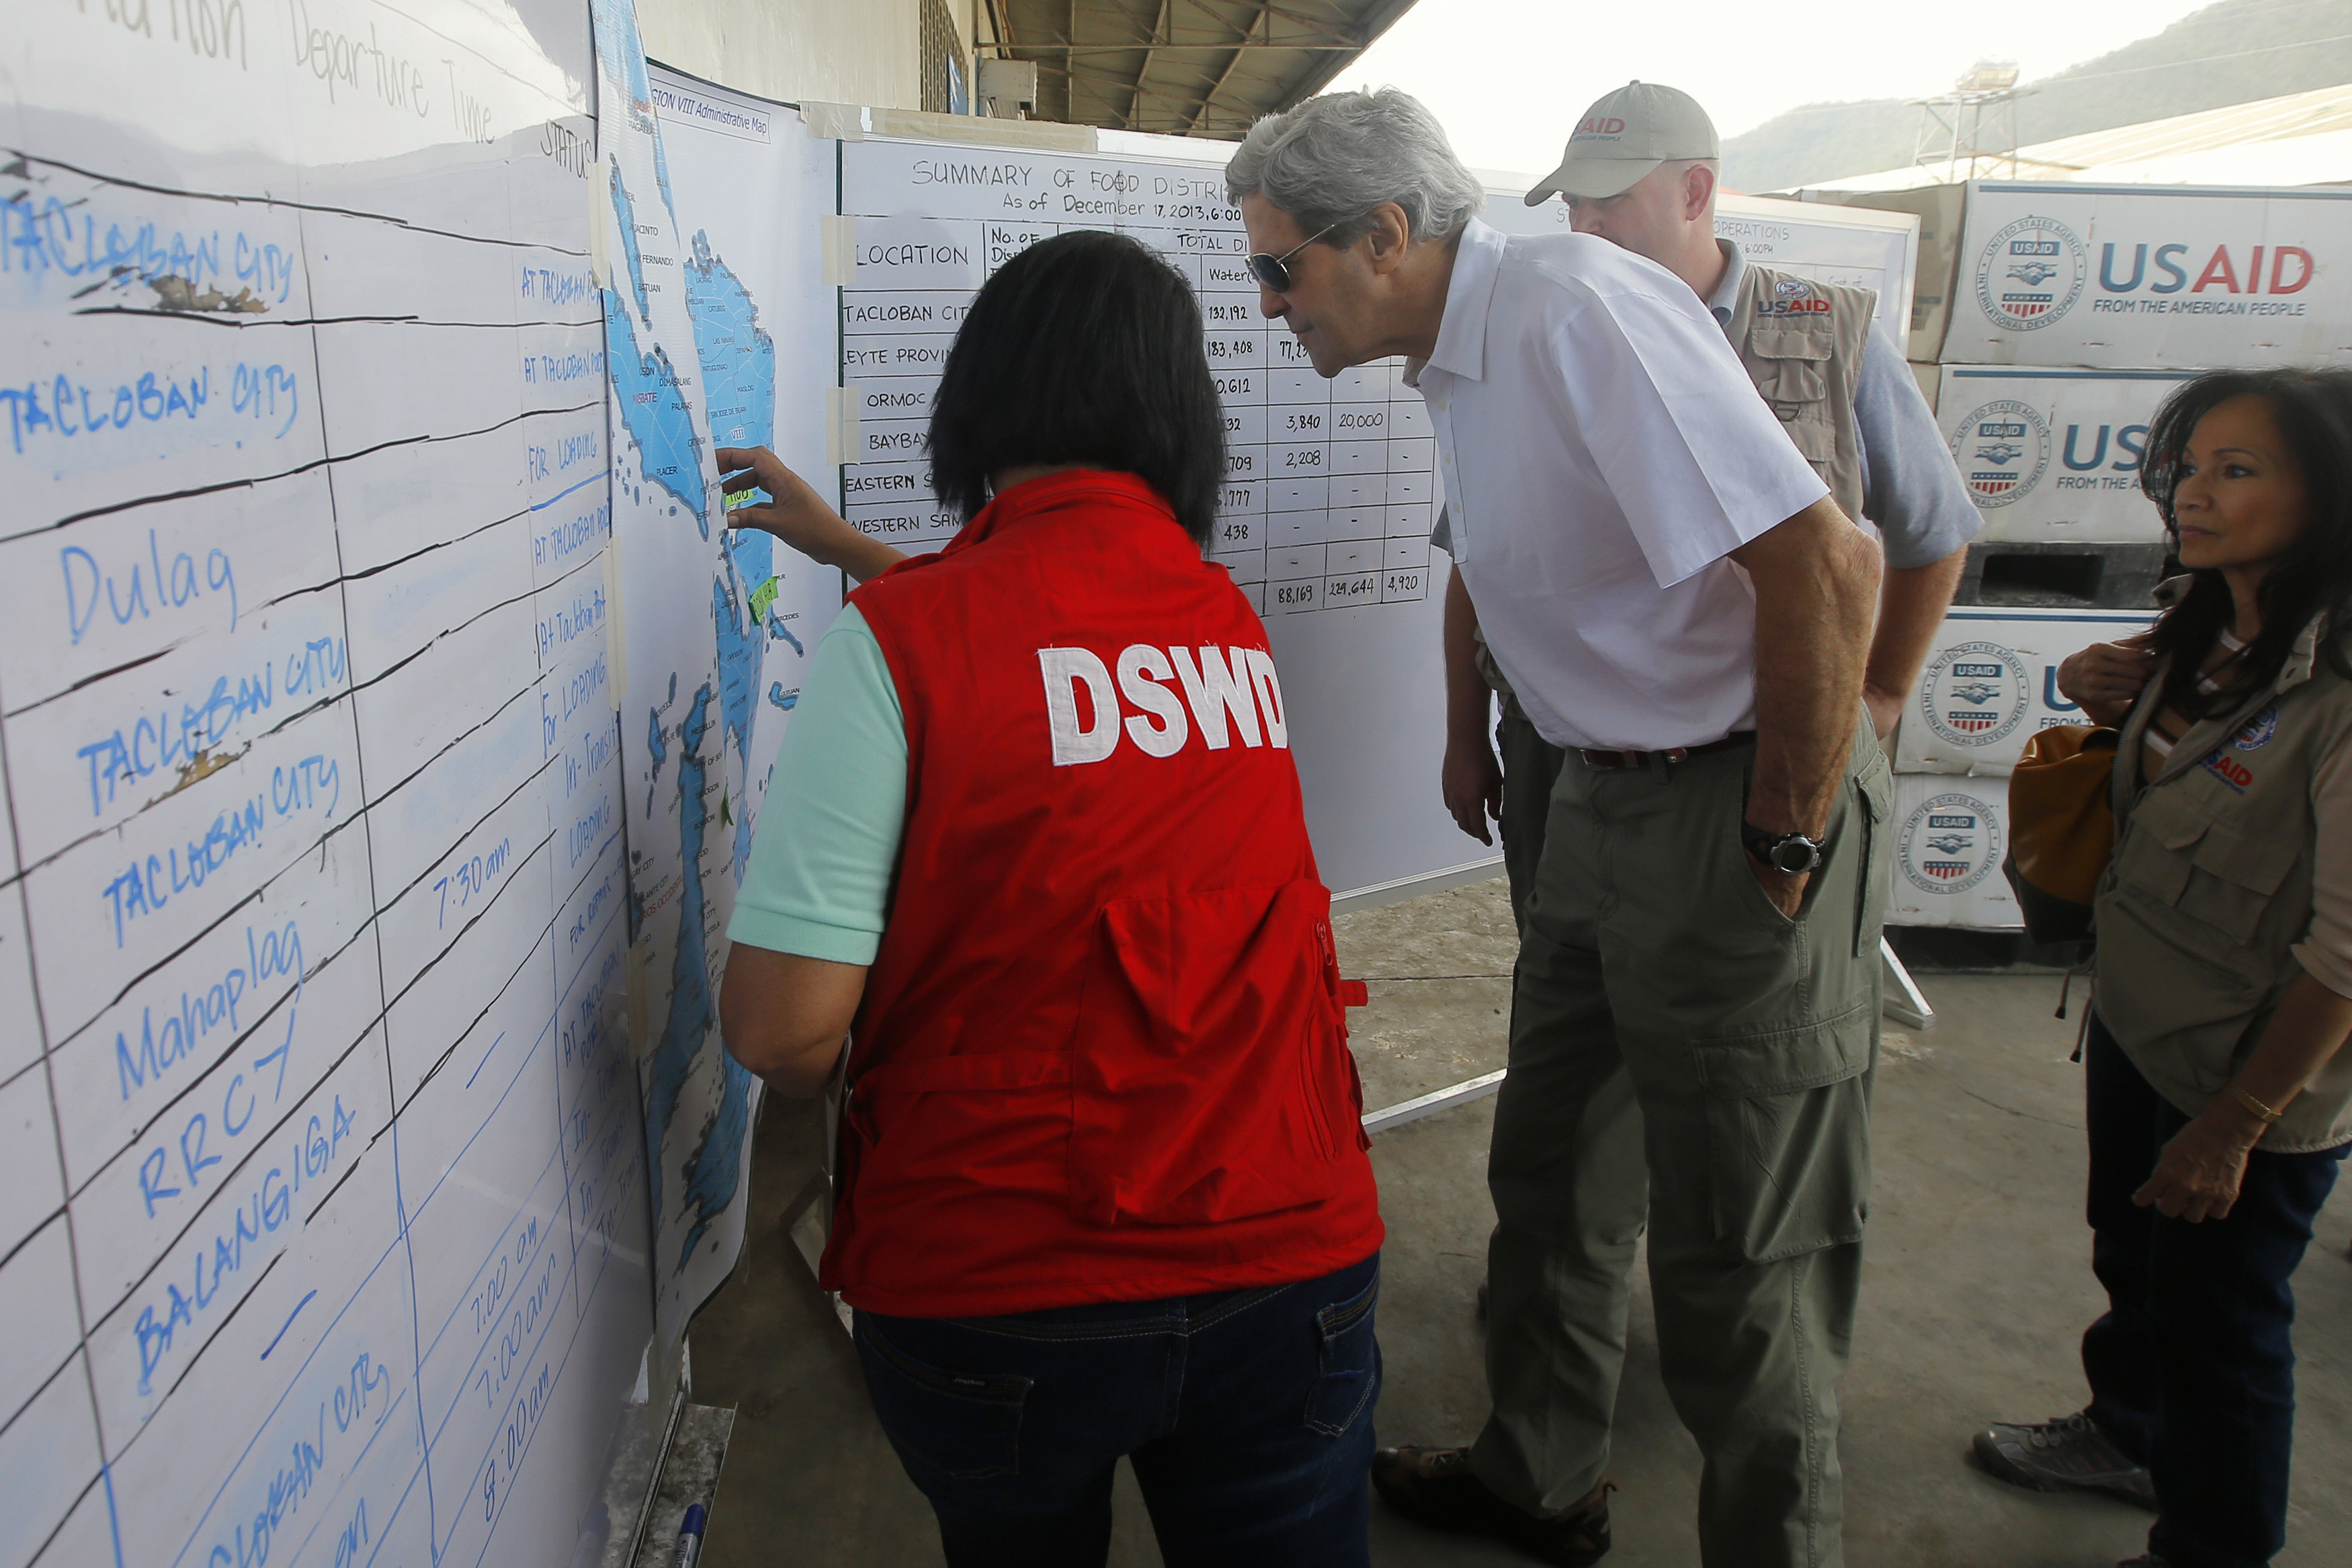 U.S. Secretary of State John Kerry looks over a map of the area during a tour of a relief distribution center in Tacloban December 18, 2013. Kerry announced that the U.S. government, through USAID, will provide an additional nearly $25 million humanitarian aid for the survivors of super typhoon Haiyan, which decimated towns and villages around Tacloban on November 8, killing more than 6,000 people and displacing 4 million.  REUTERS/Brian Snyder   (PHILIPPINES - Tags: POLITICS DISASTER SOCIETY) - RTX16N4D